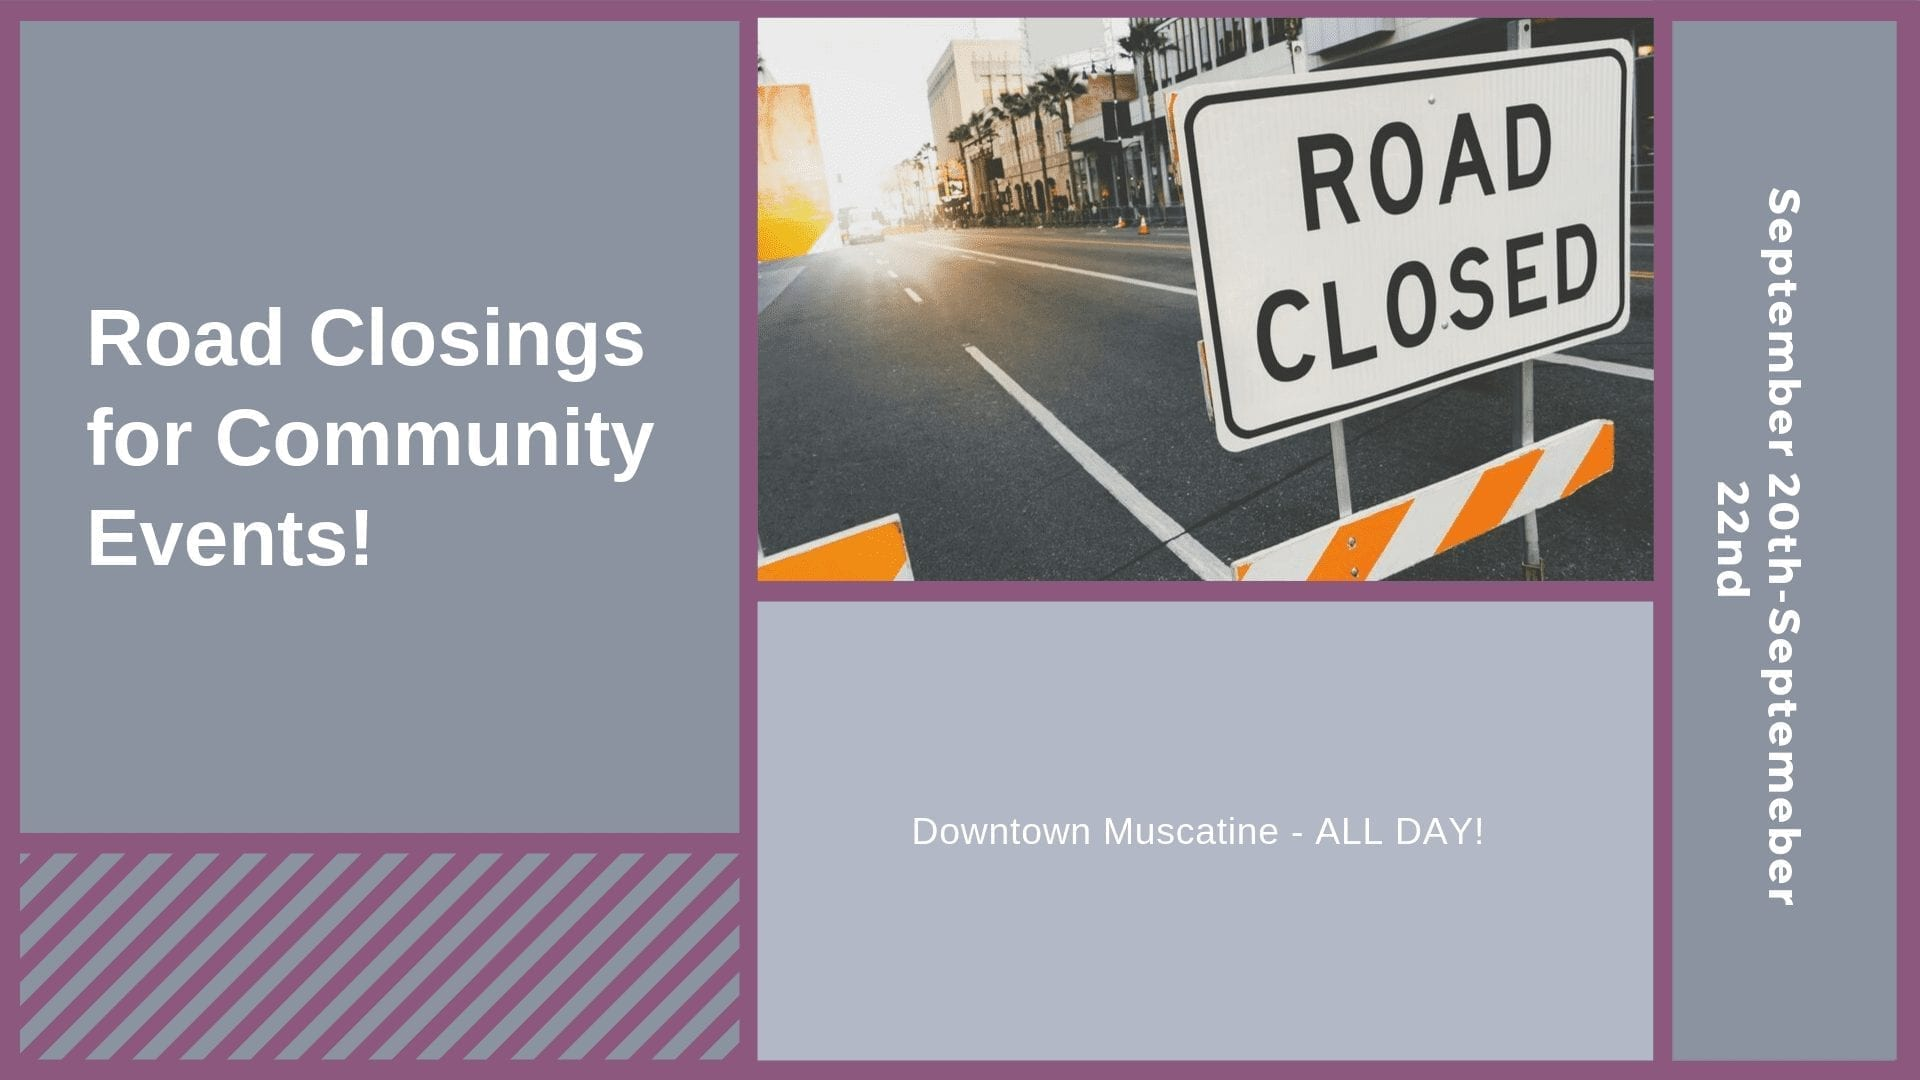 Road Closings for Community Events!